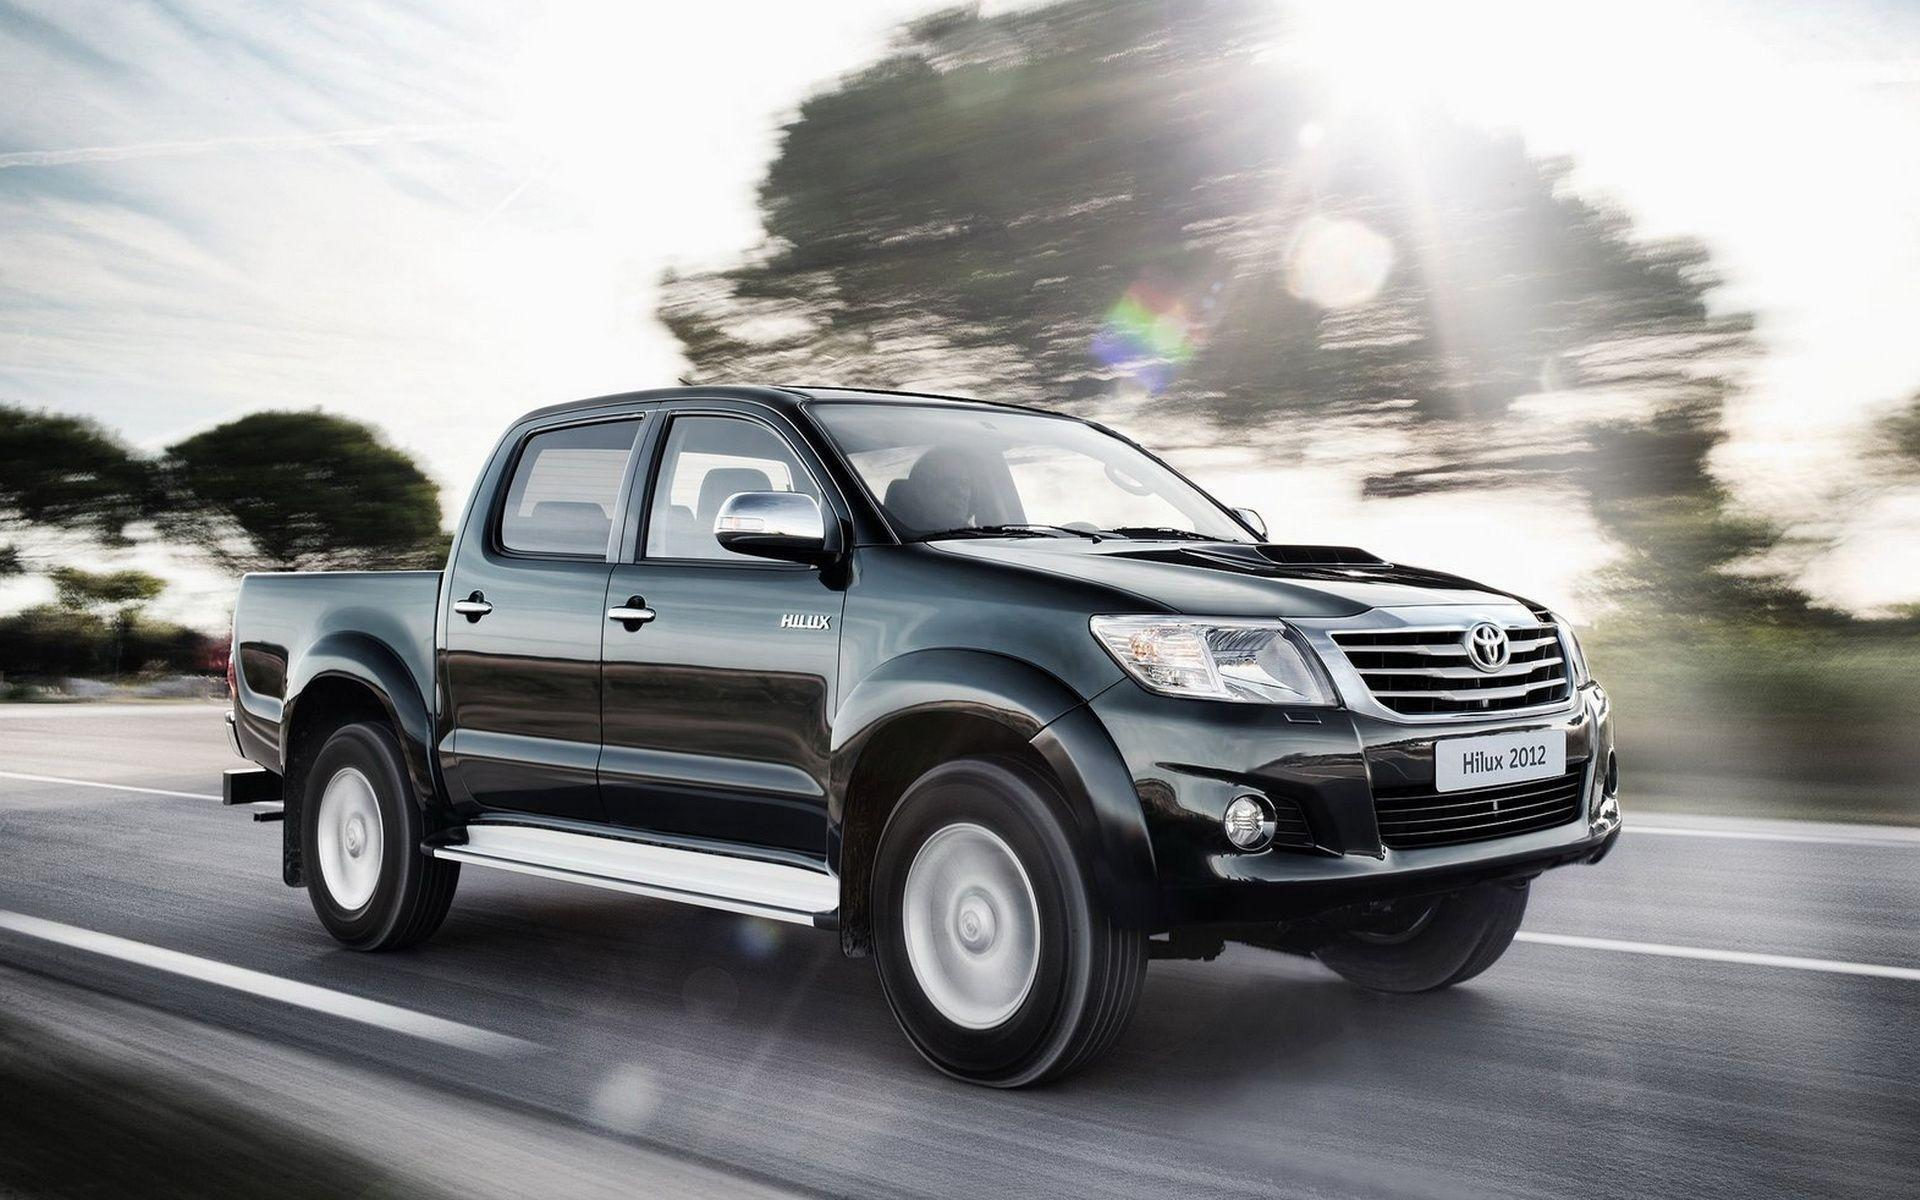 Toyota-Hilux wallpapers and images - wallpapers, pictures, photos